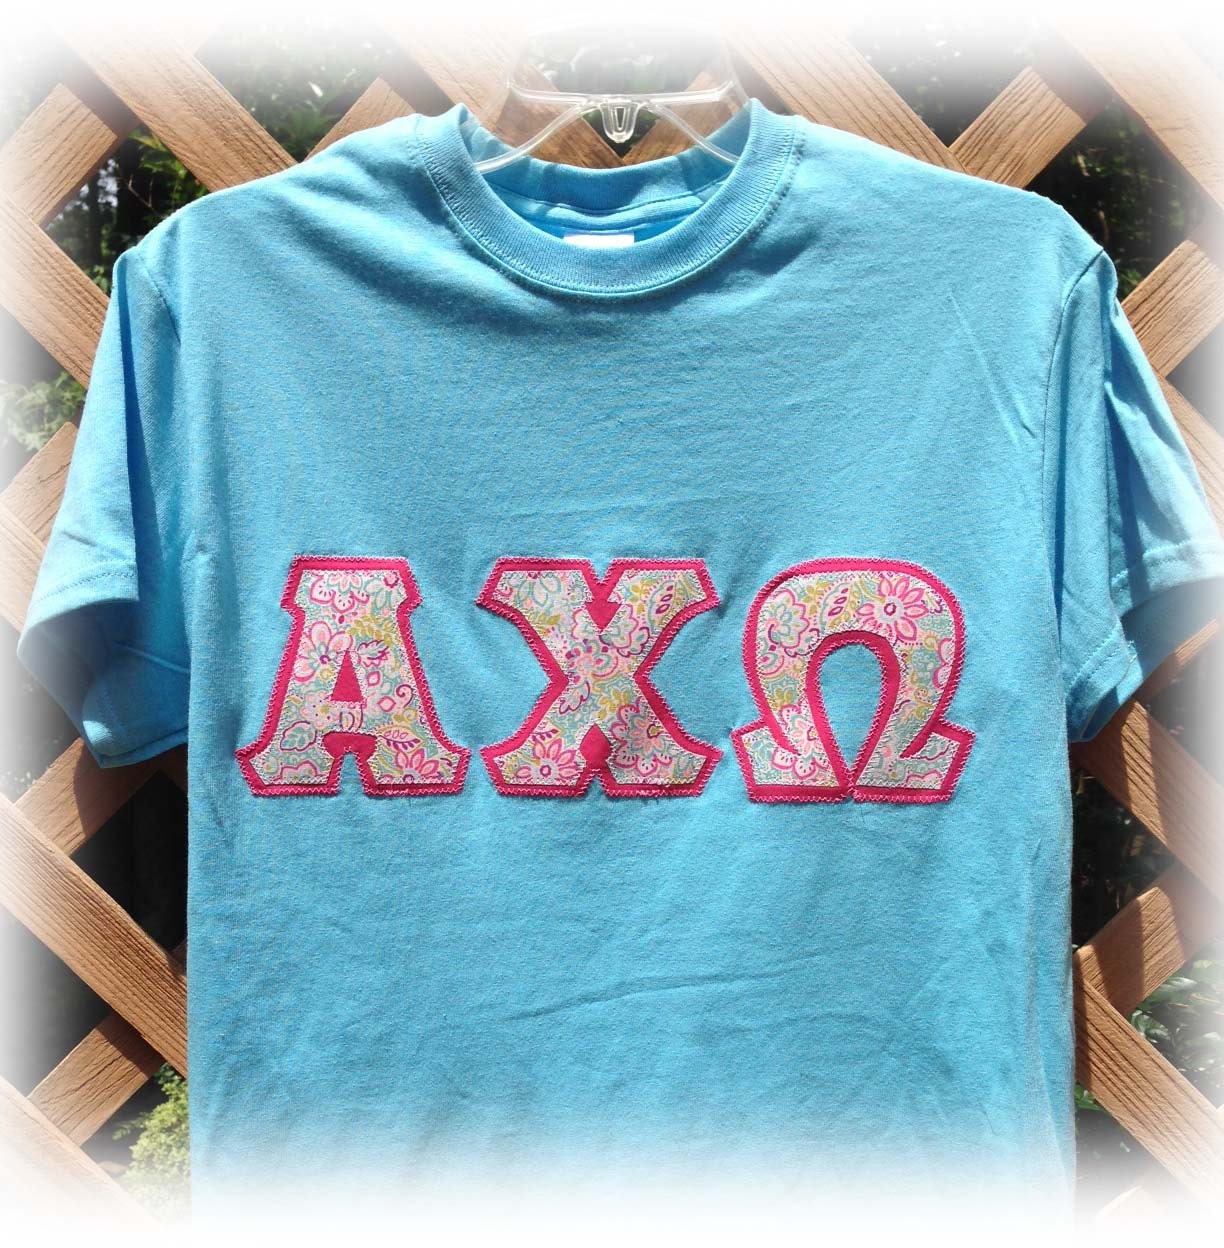 Items similar to greek stitch letter shirt on etsy for Custom greek letter t shirts